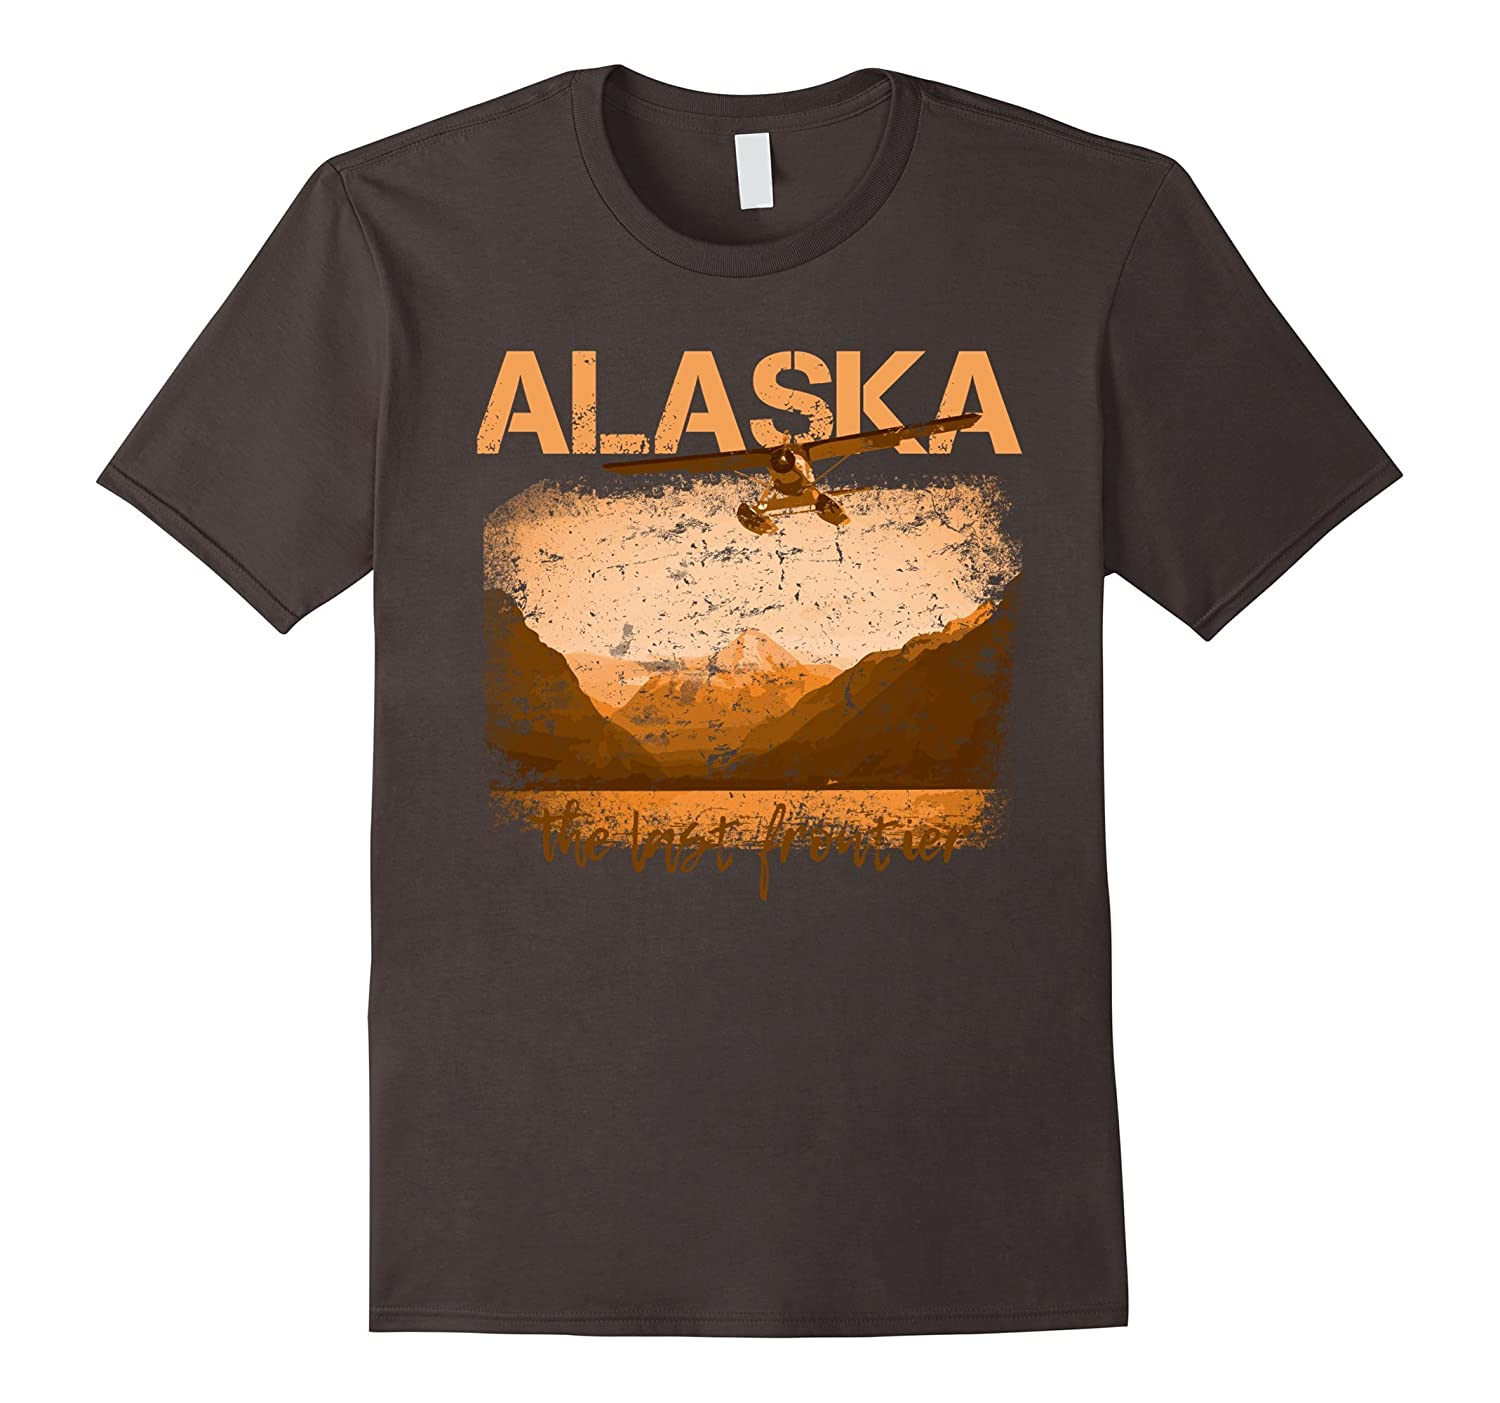 Alaska The Last Frontier With Float Plane T-Shirt